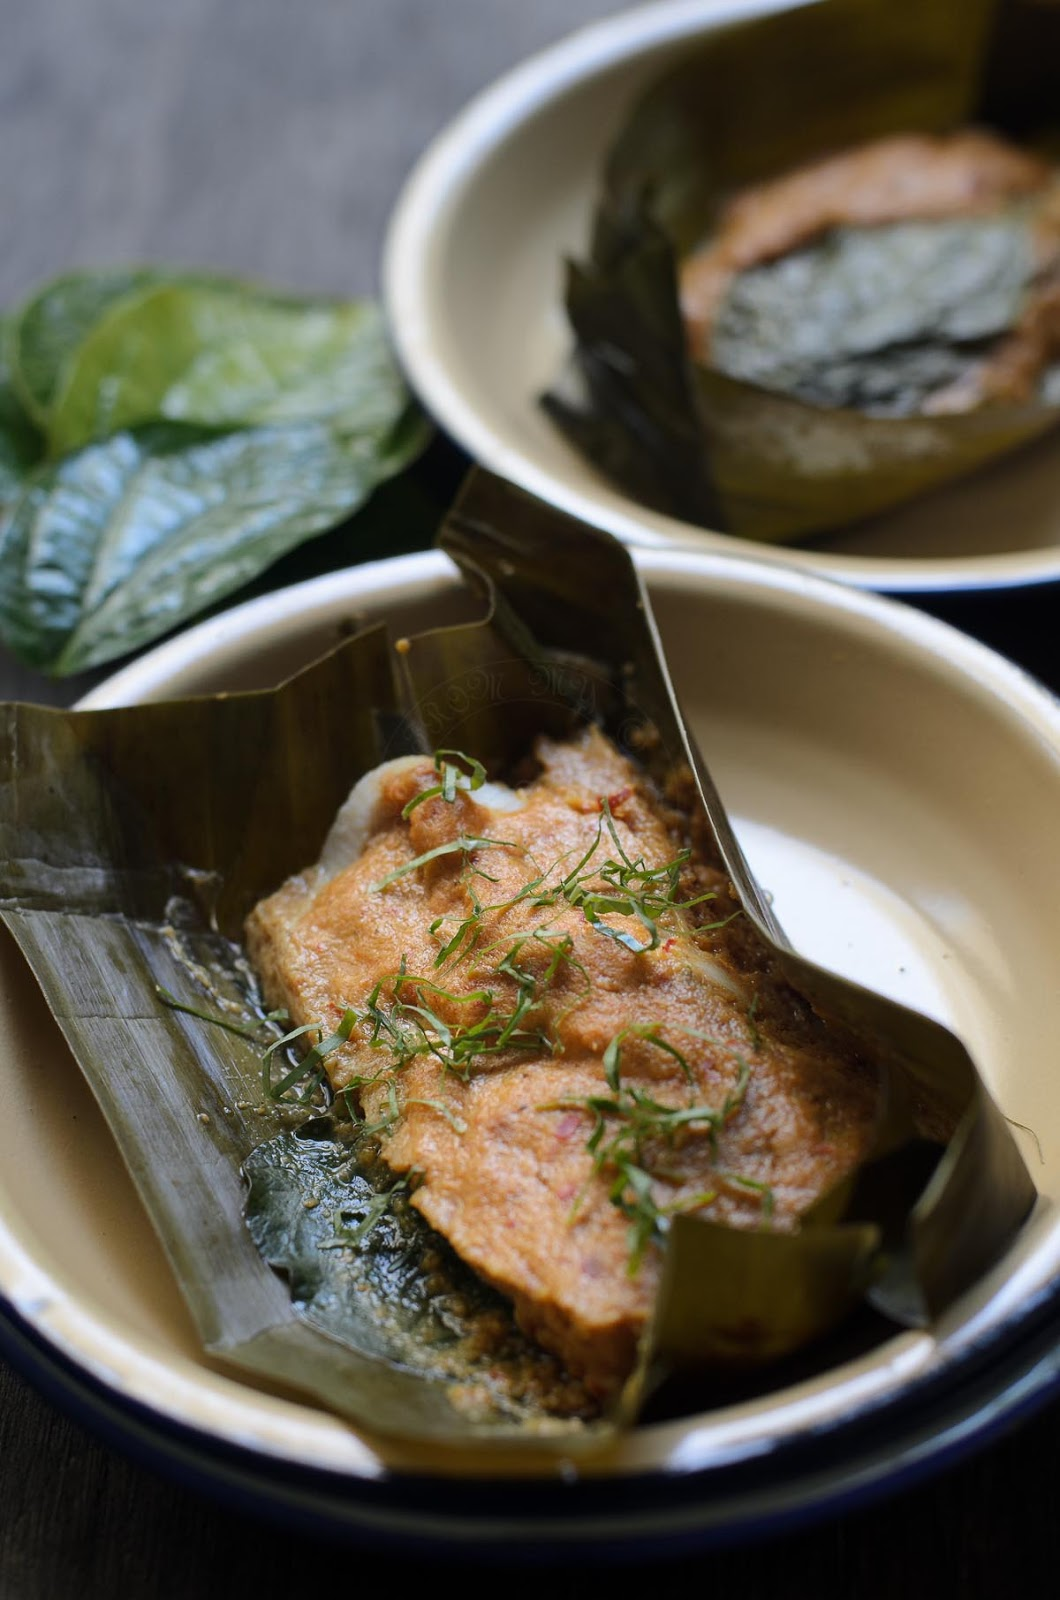 Otak-Otak /Spicy Fish Parcels